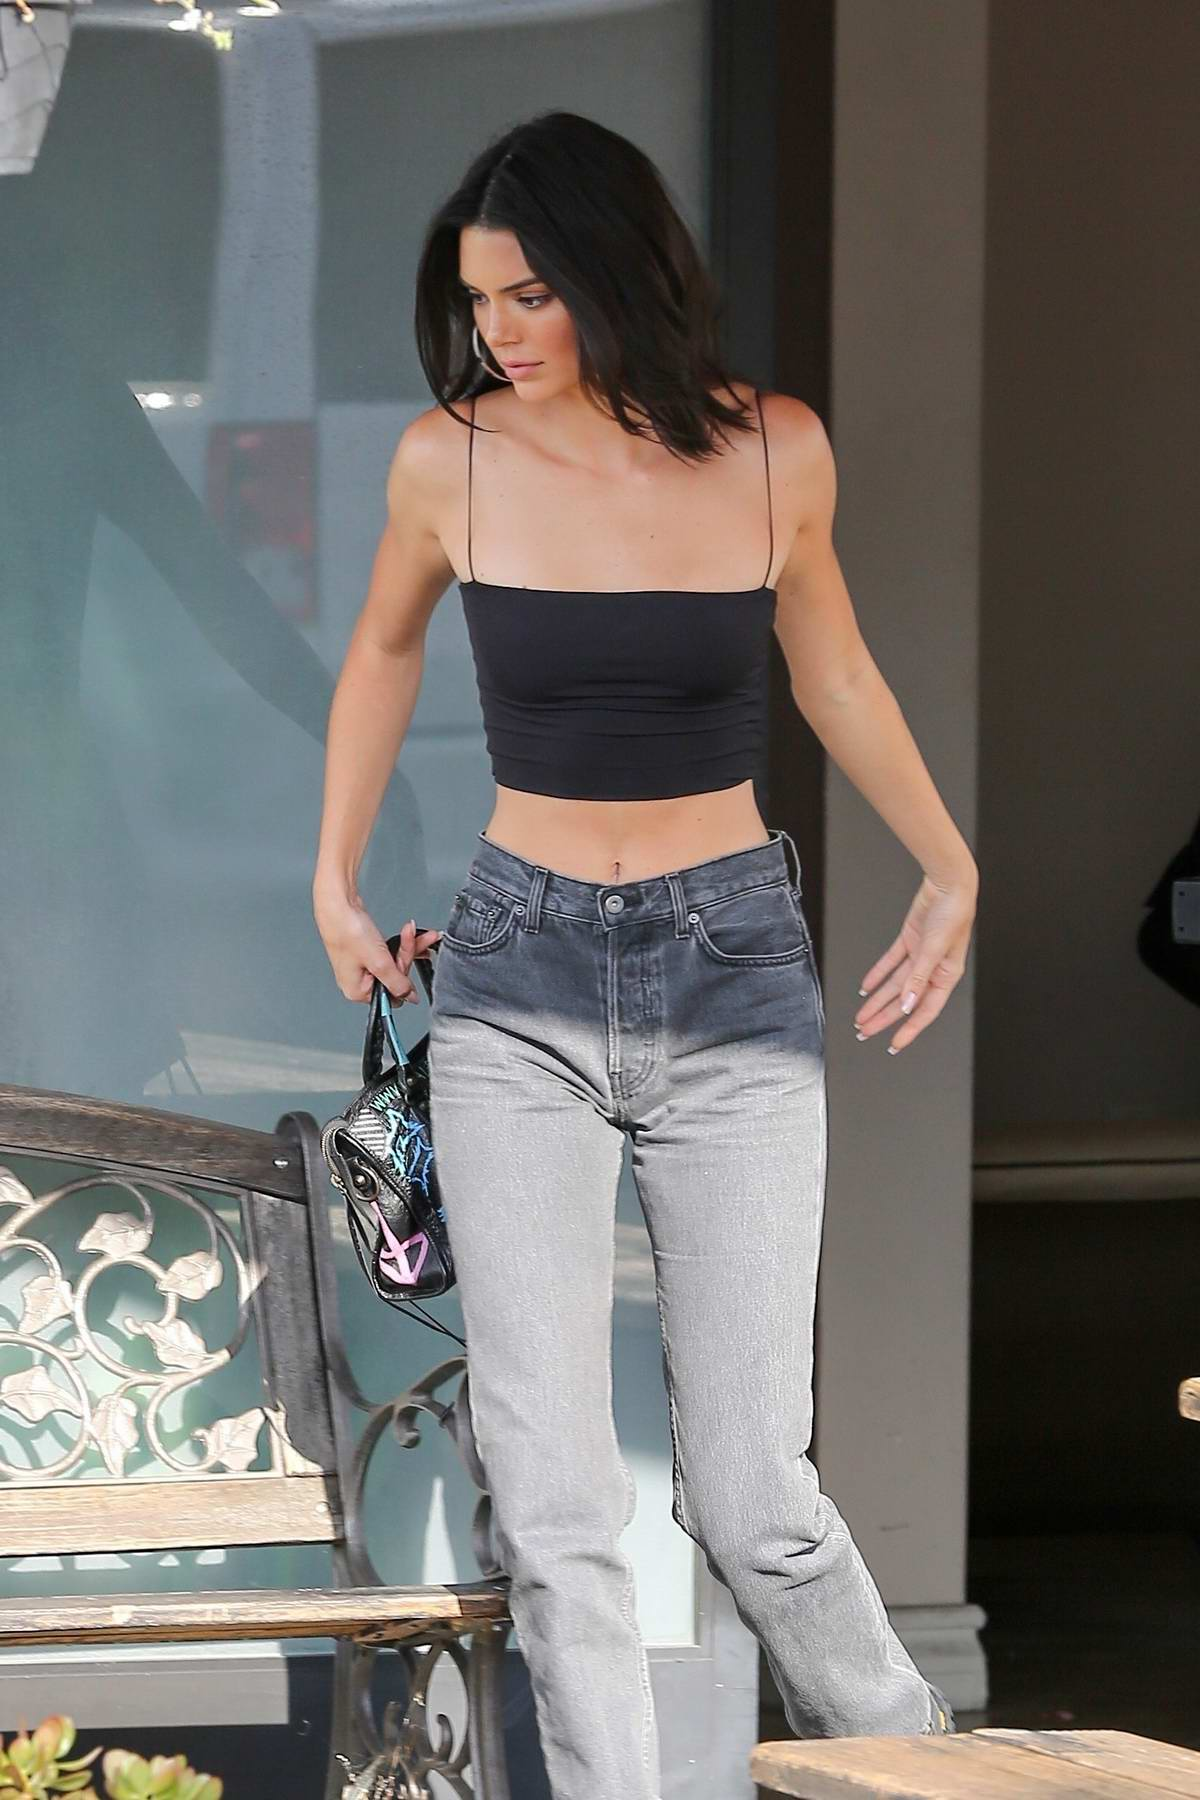 Kendall Jenner leaves the studio in a black corset top in Calabasas, California